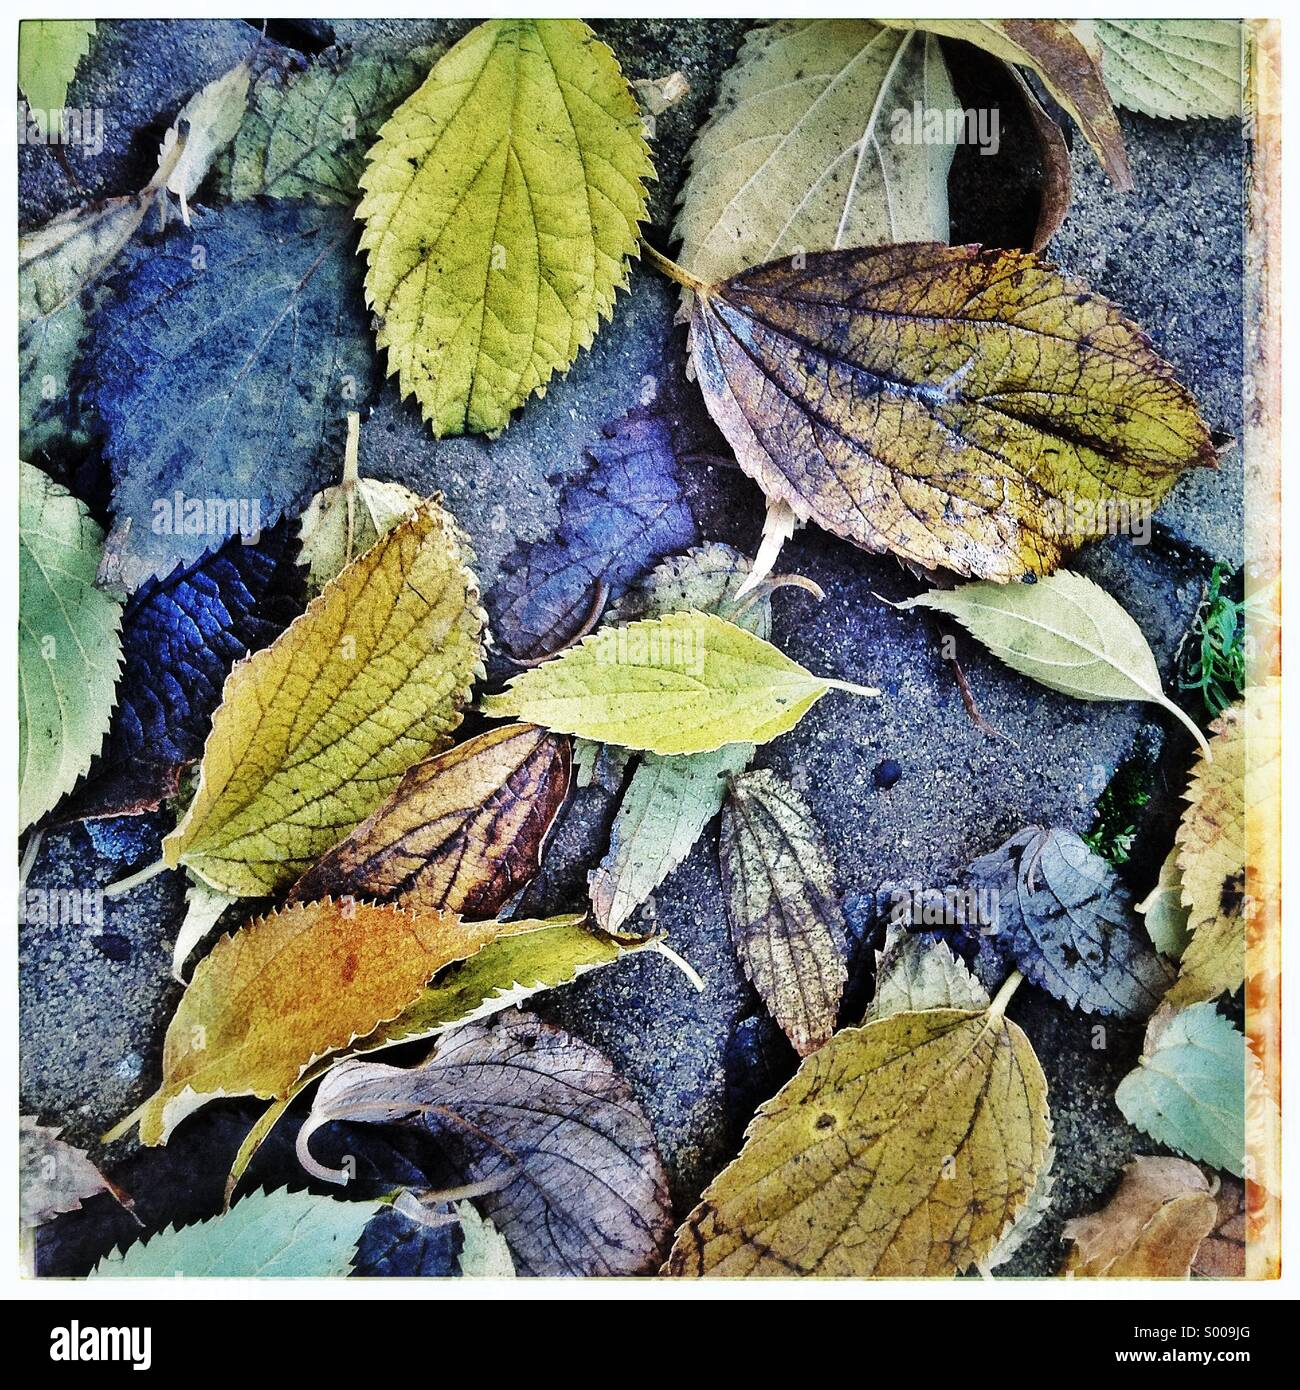 Wet fallen autumnal leaves background on the floor of a city. - Stock Image